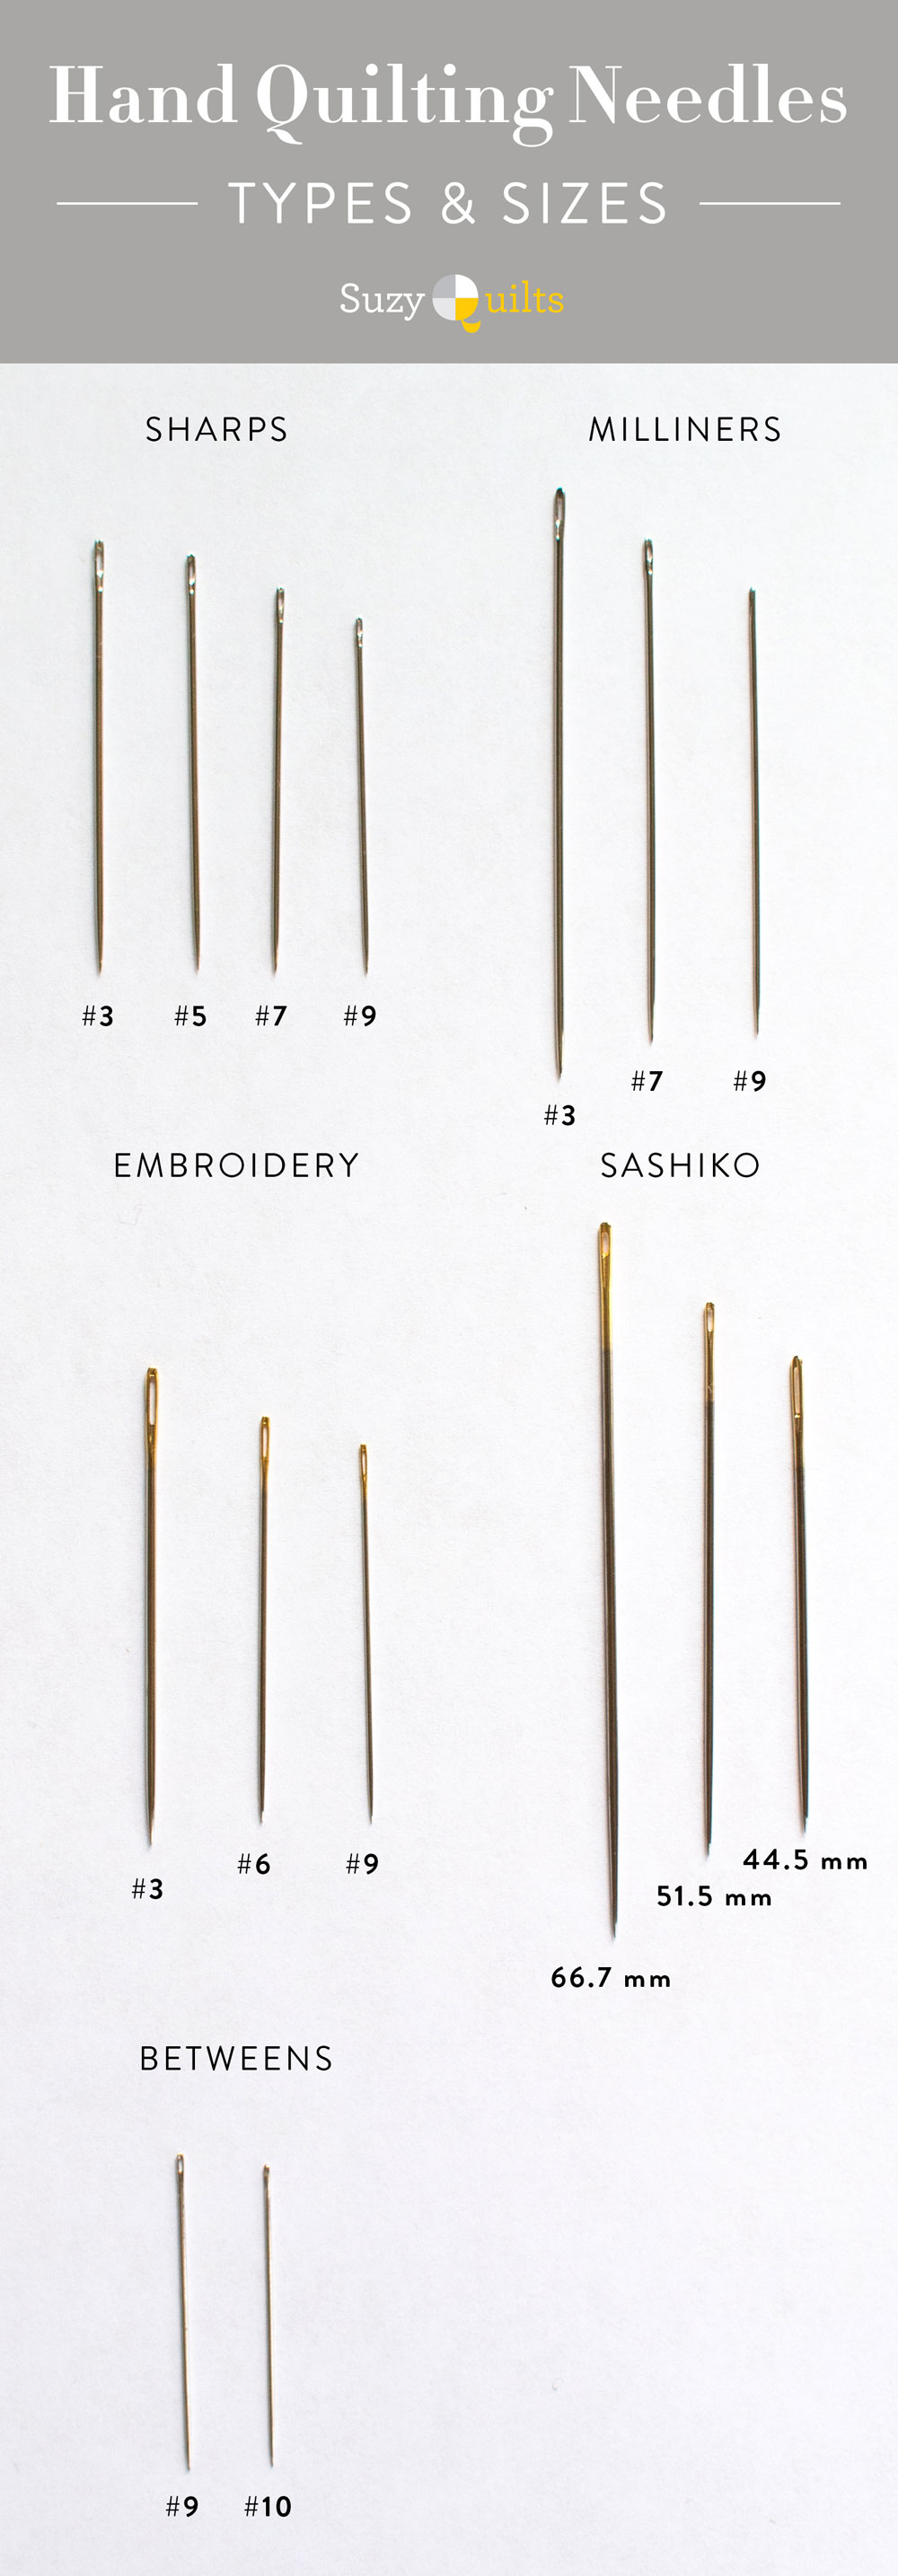 An infographic to help display the different kinds of quilting needles and their sizes. | Suzy Quilts https://suzyquilts.com/best-hand-quilting-needles-part-i